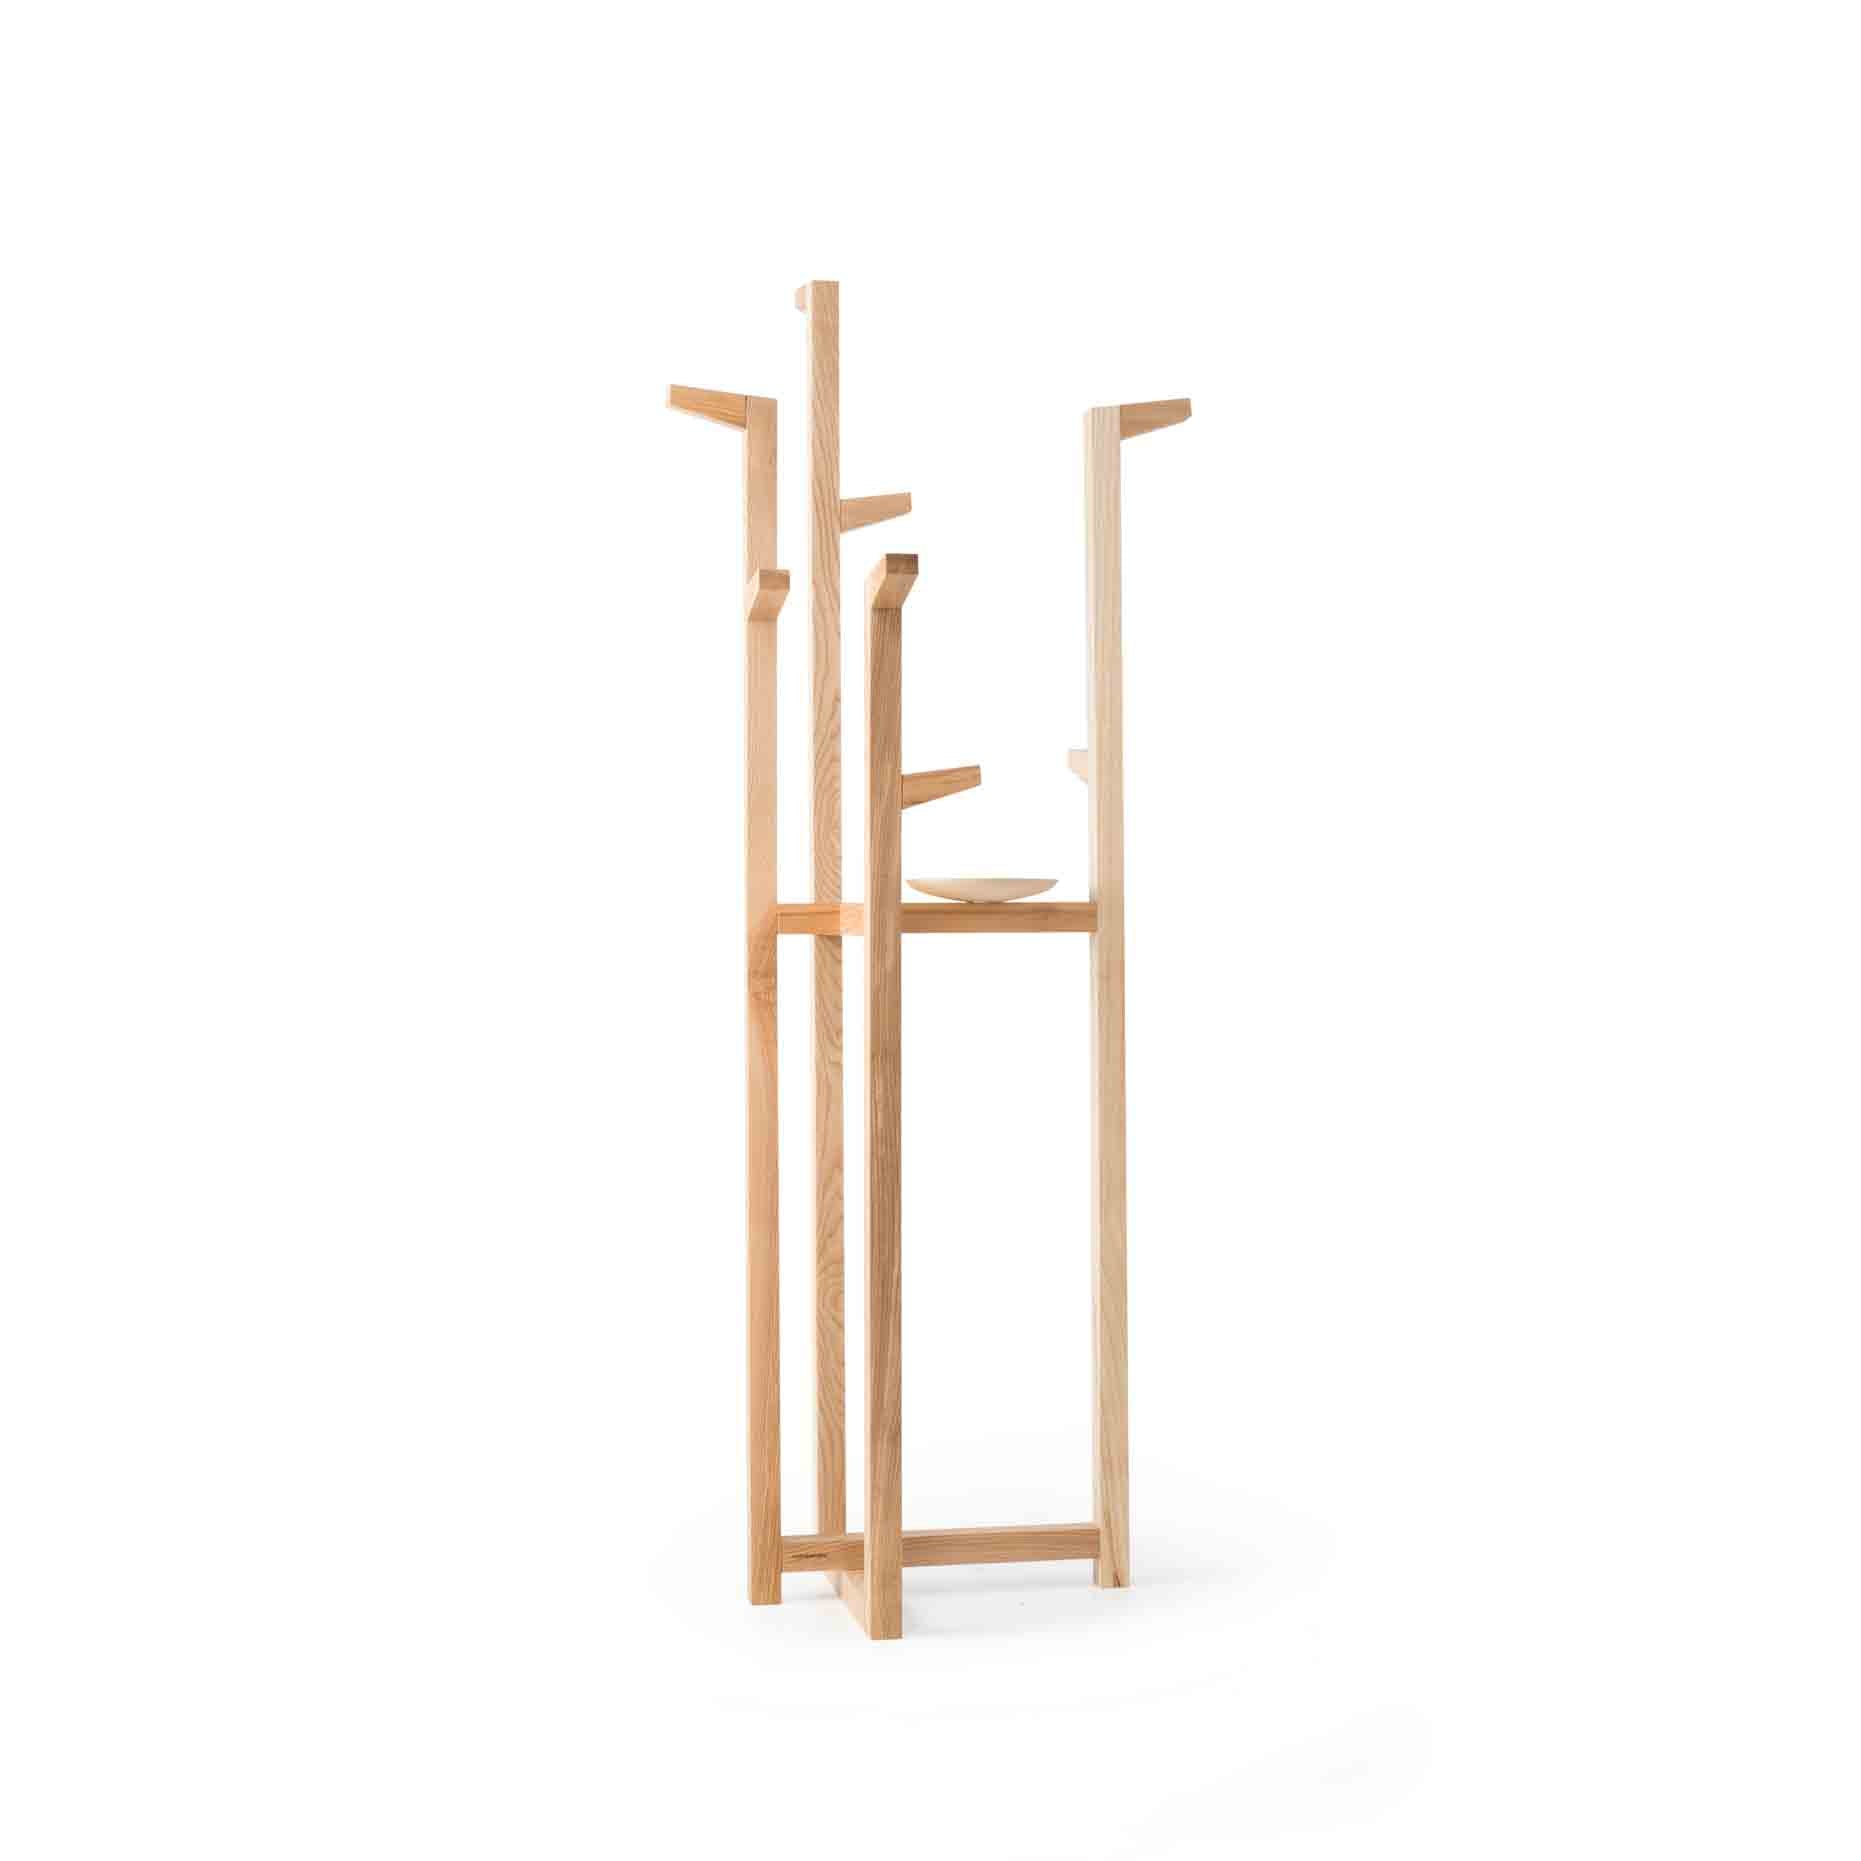 Rubble Interior Design Marketplace, Cla Ash Wood Coat Rack Ana Rodrigues Designer by Porventura